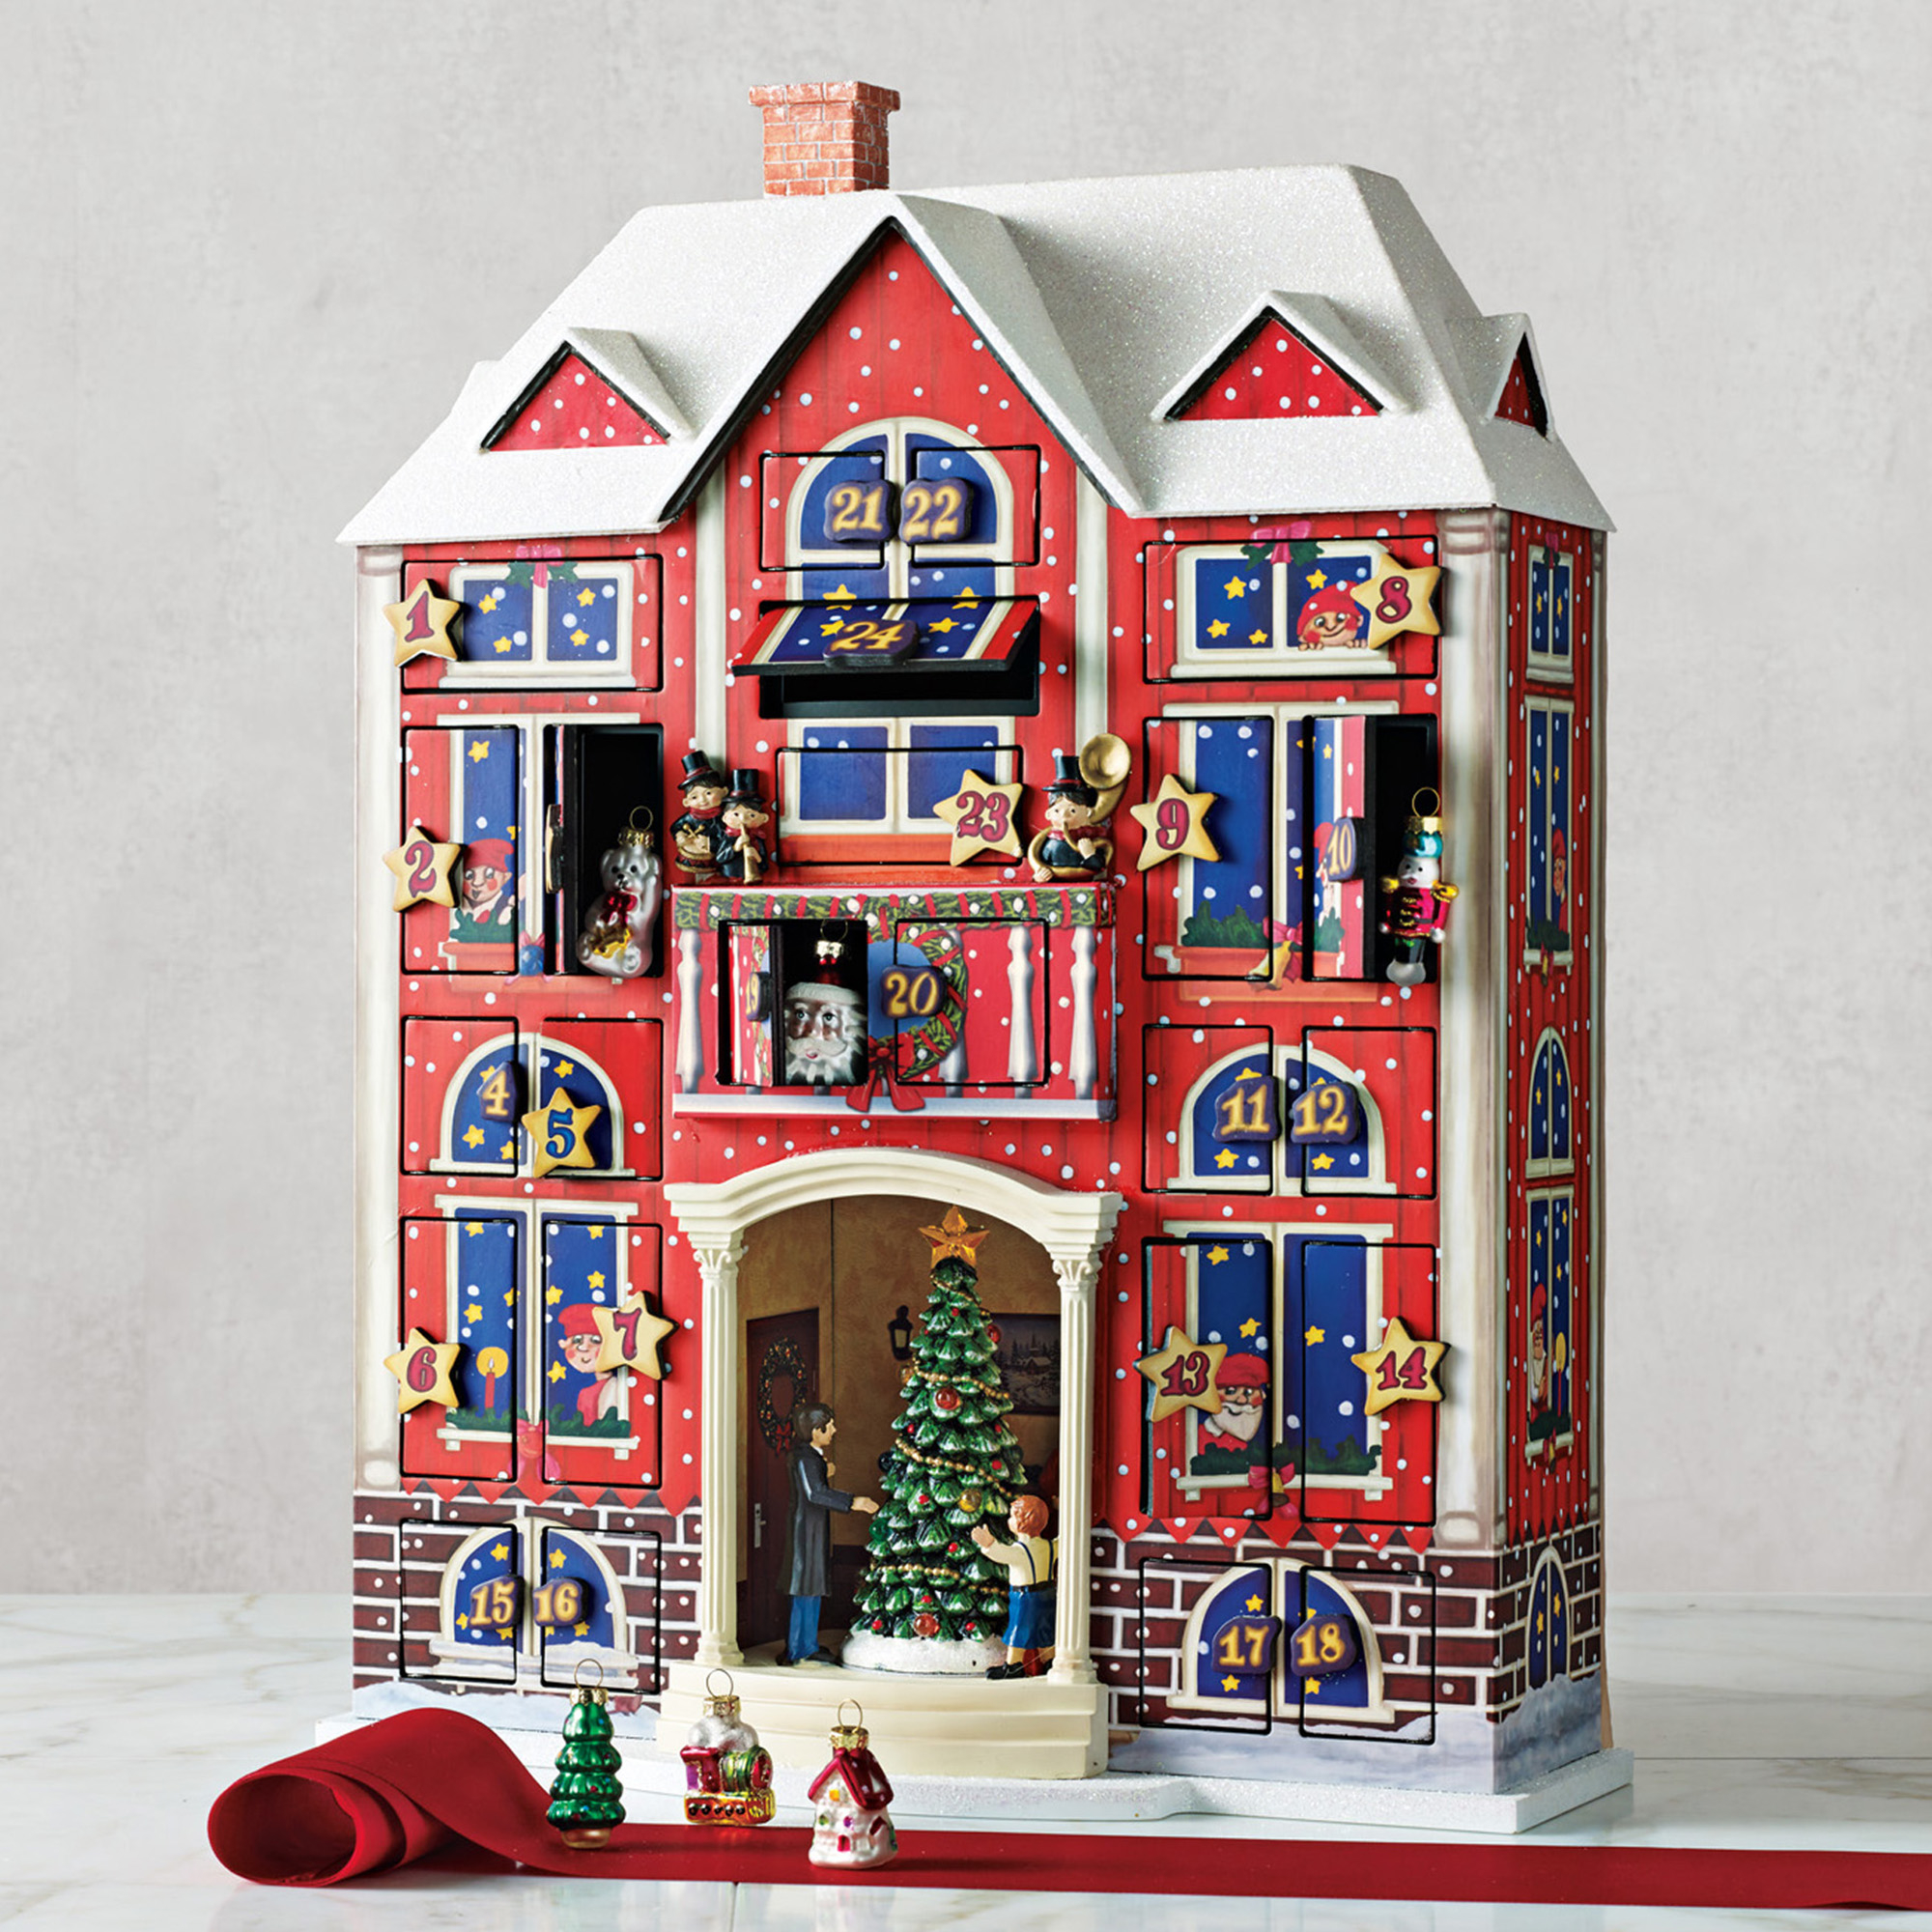 Animated Advent Calendar & Mini Ornament Set